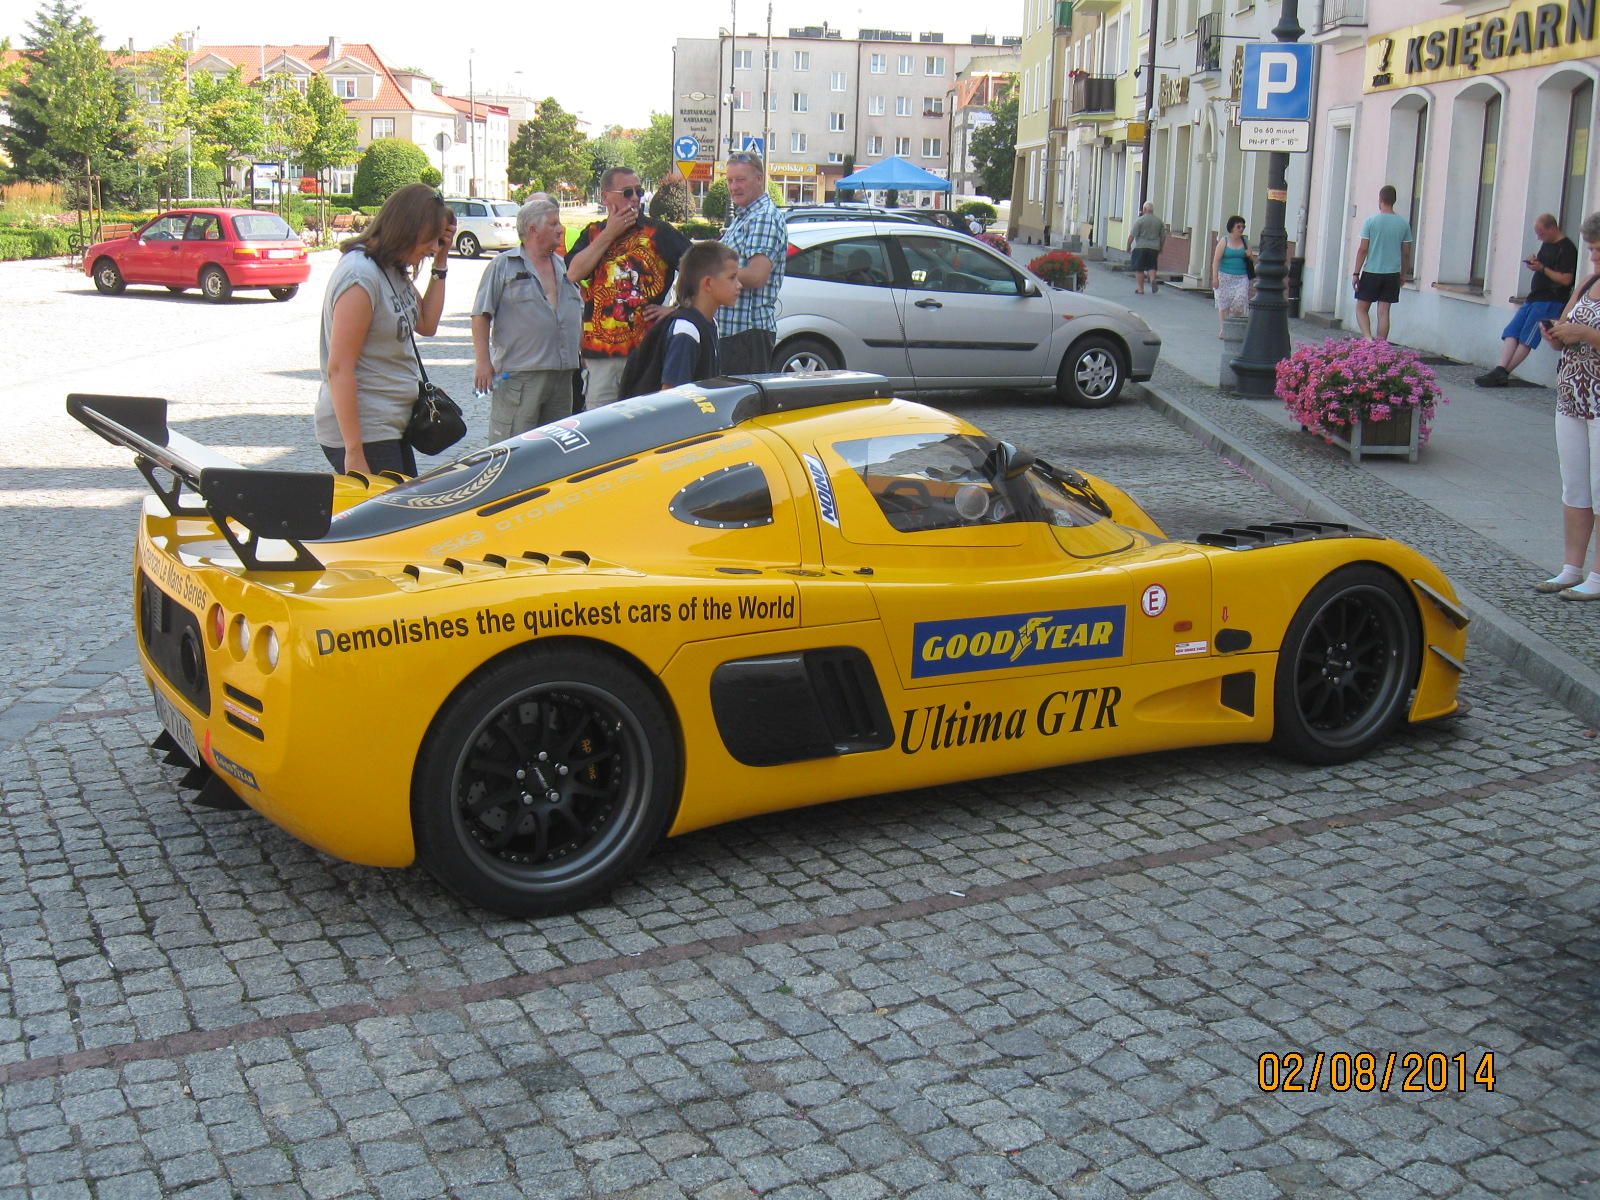 http://124coupe.pl/hosting/images/img2853.jpg